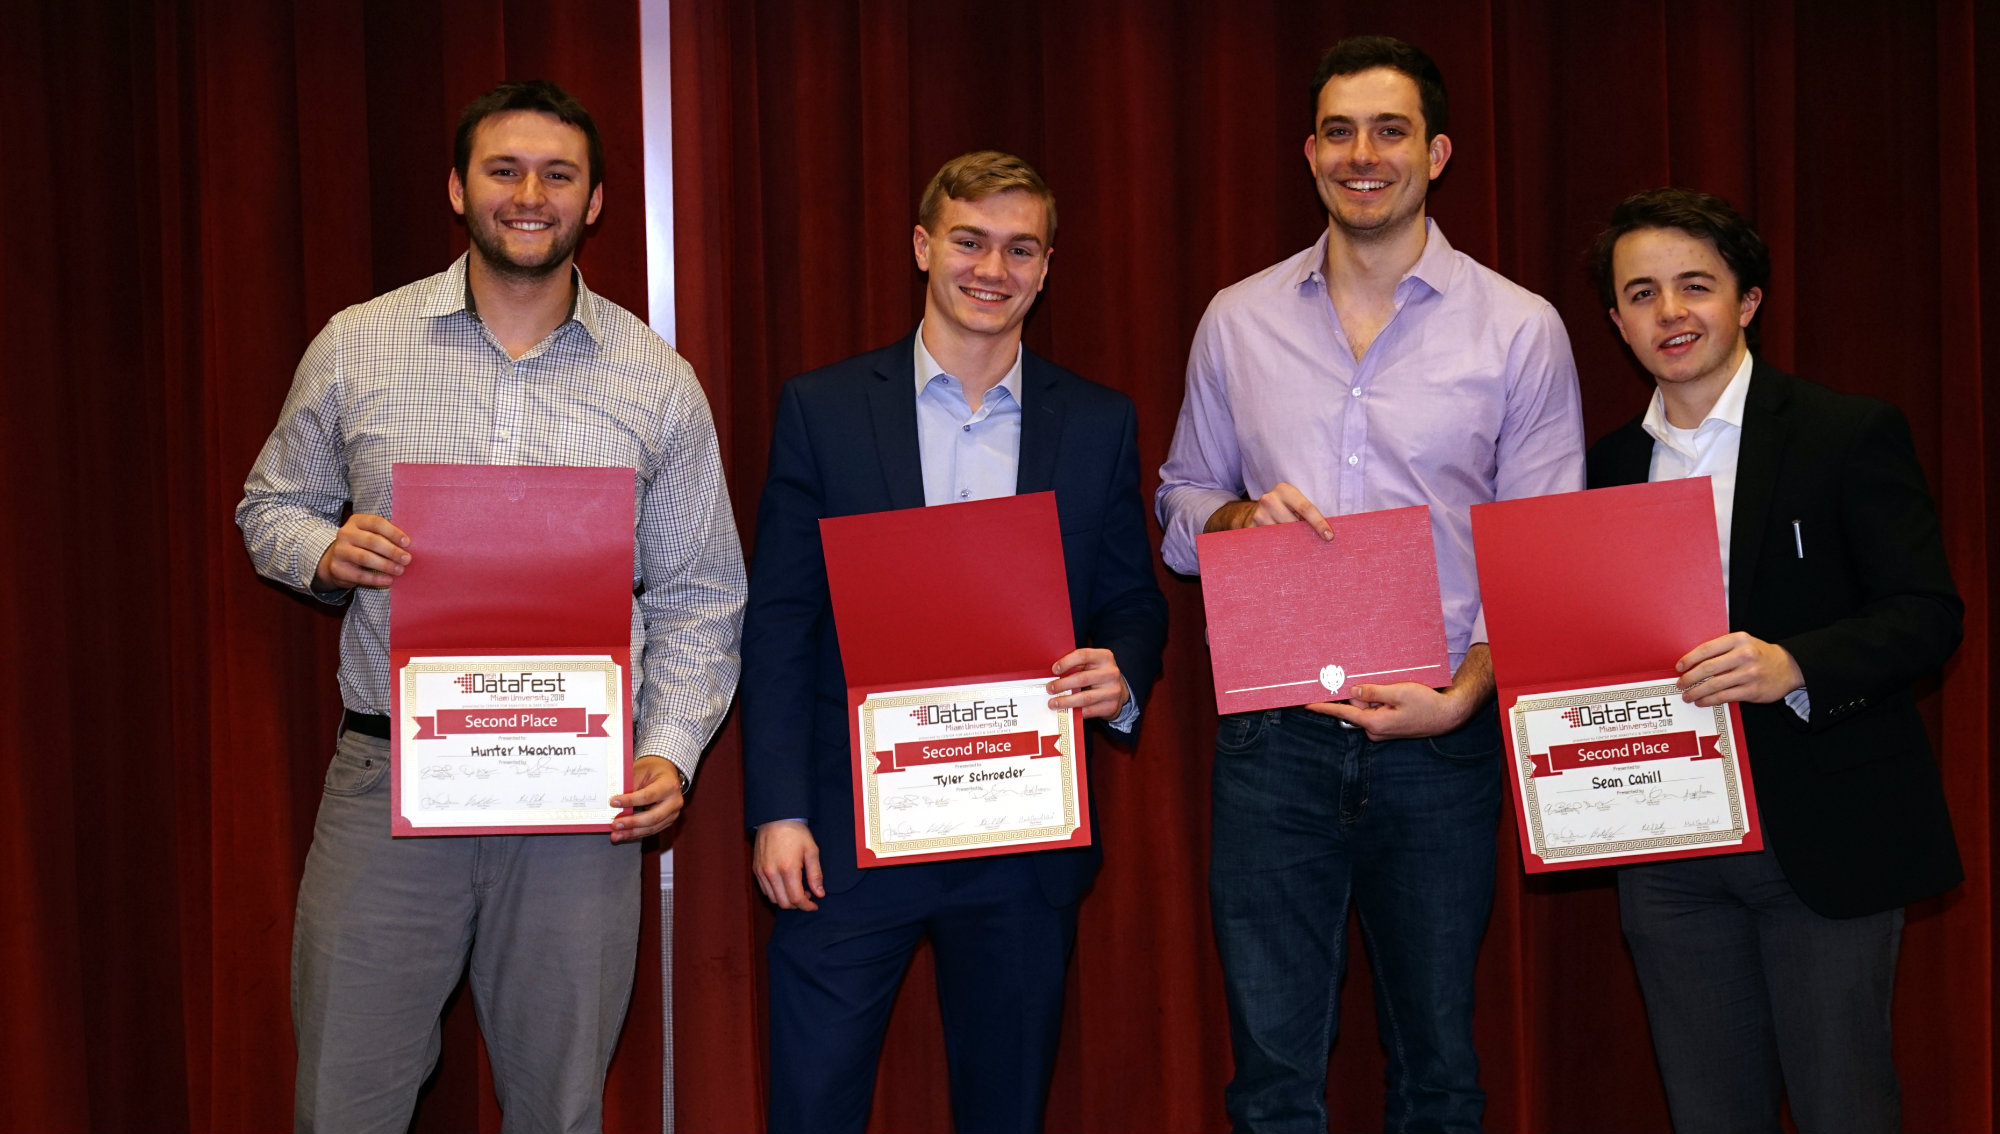 2nd place: How Big Is Your Data -- Sean Cahill, Peter Kalivas, Hunter Meacham, Tyler Schroeder